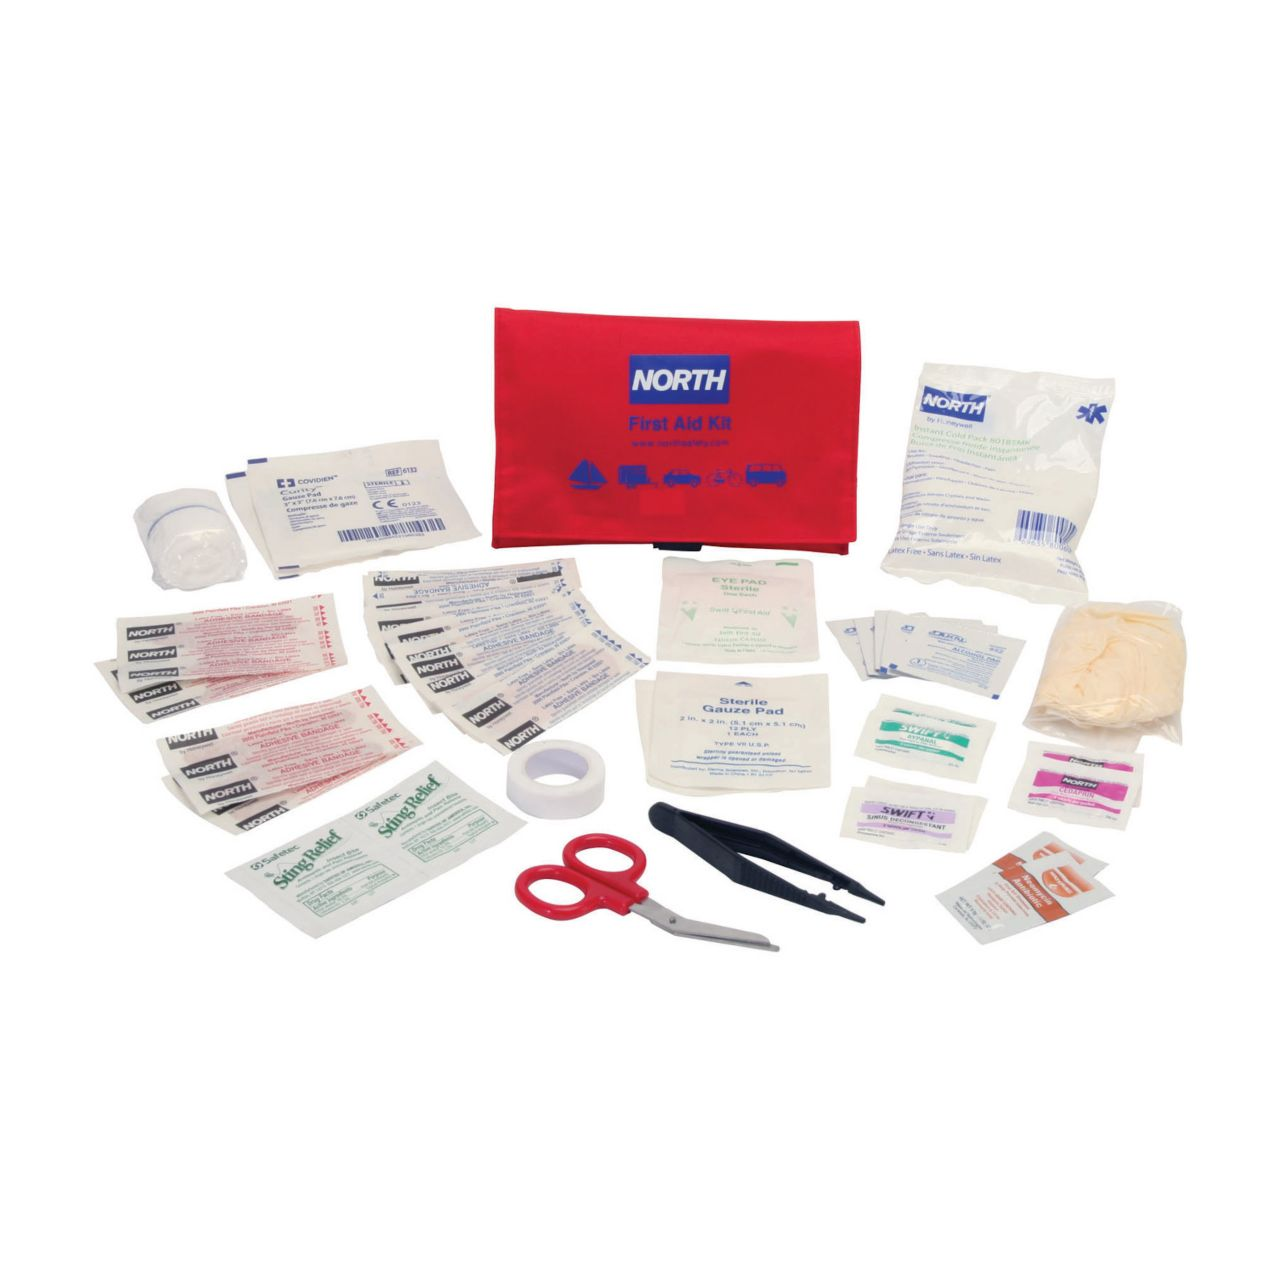 HS_018512-4219_-_general_purpose_soft-sided_first_aid_kit_north_018512-4219 first aid kit all purpose